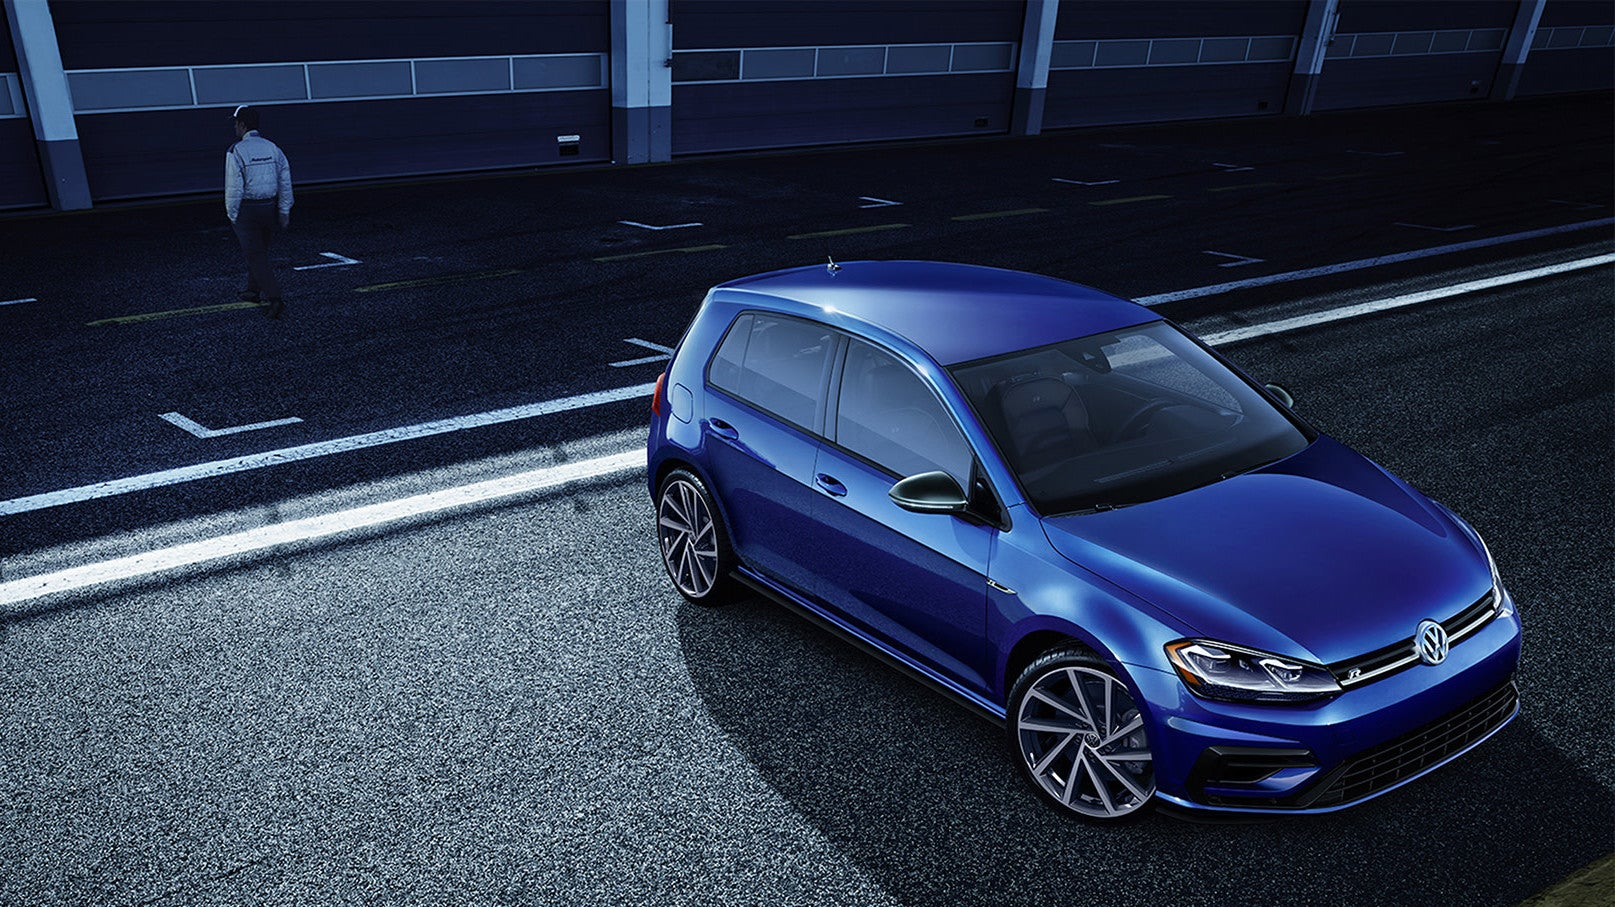 Audi Rejected A Five-Cylinder Engine For The New Volkswagen Golf R: Report